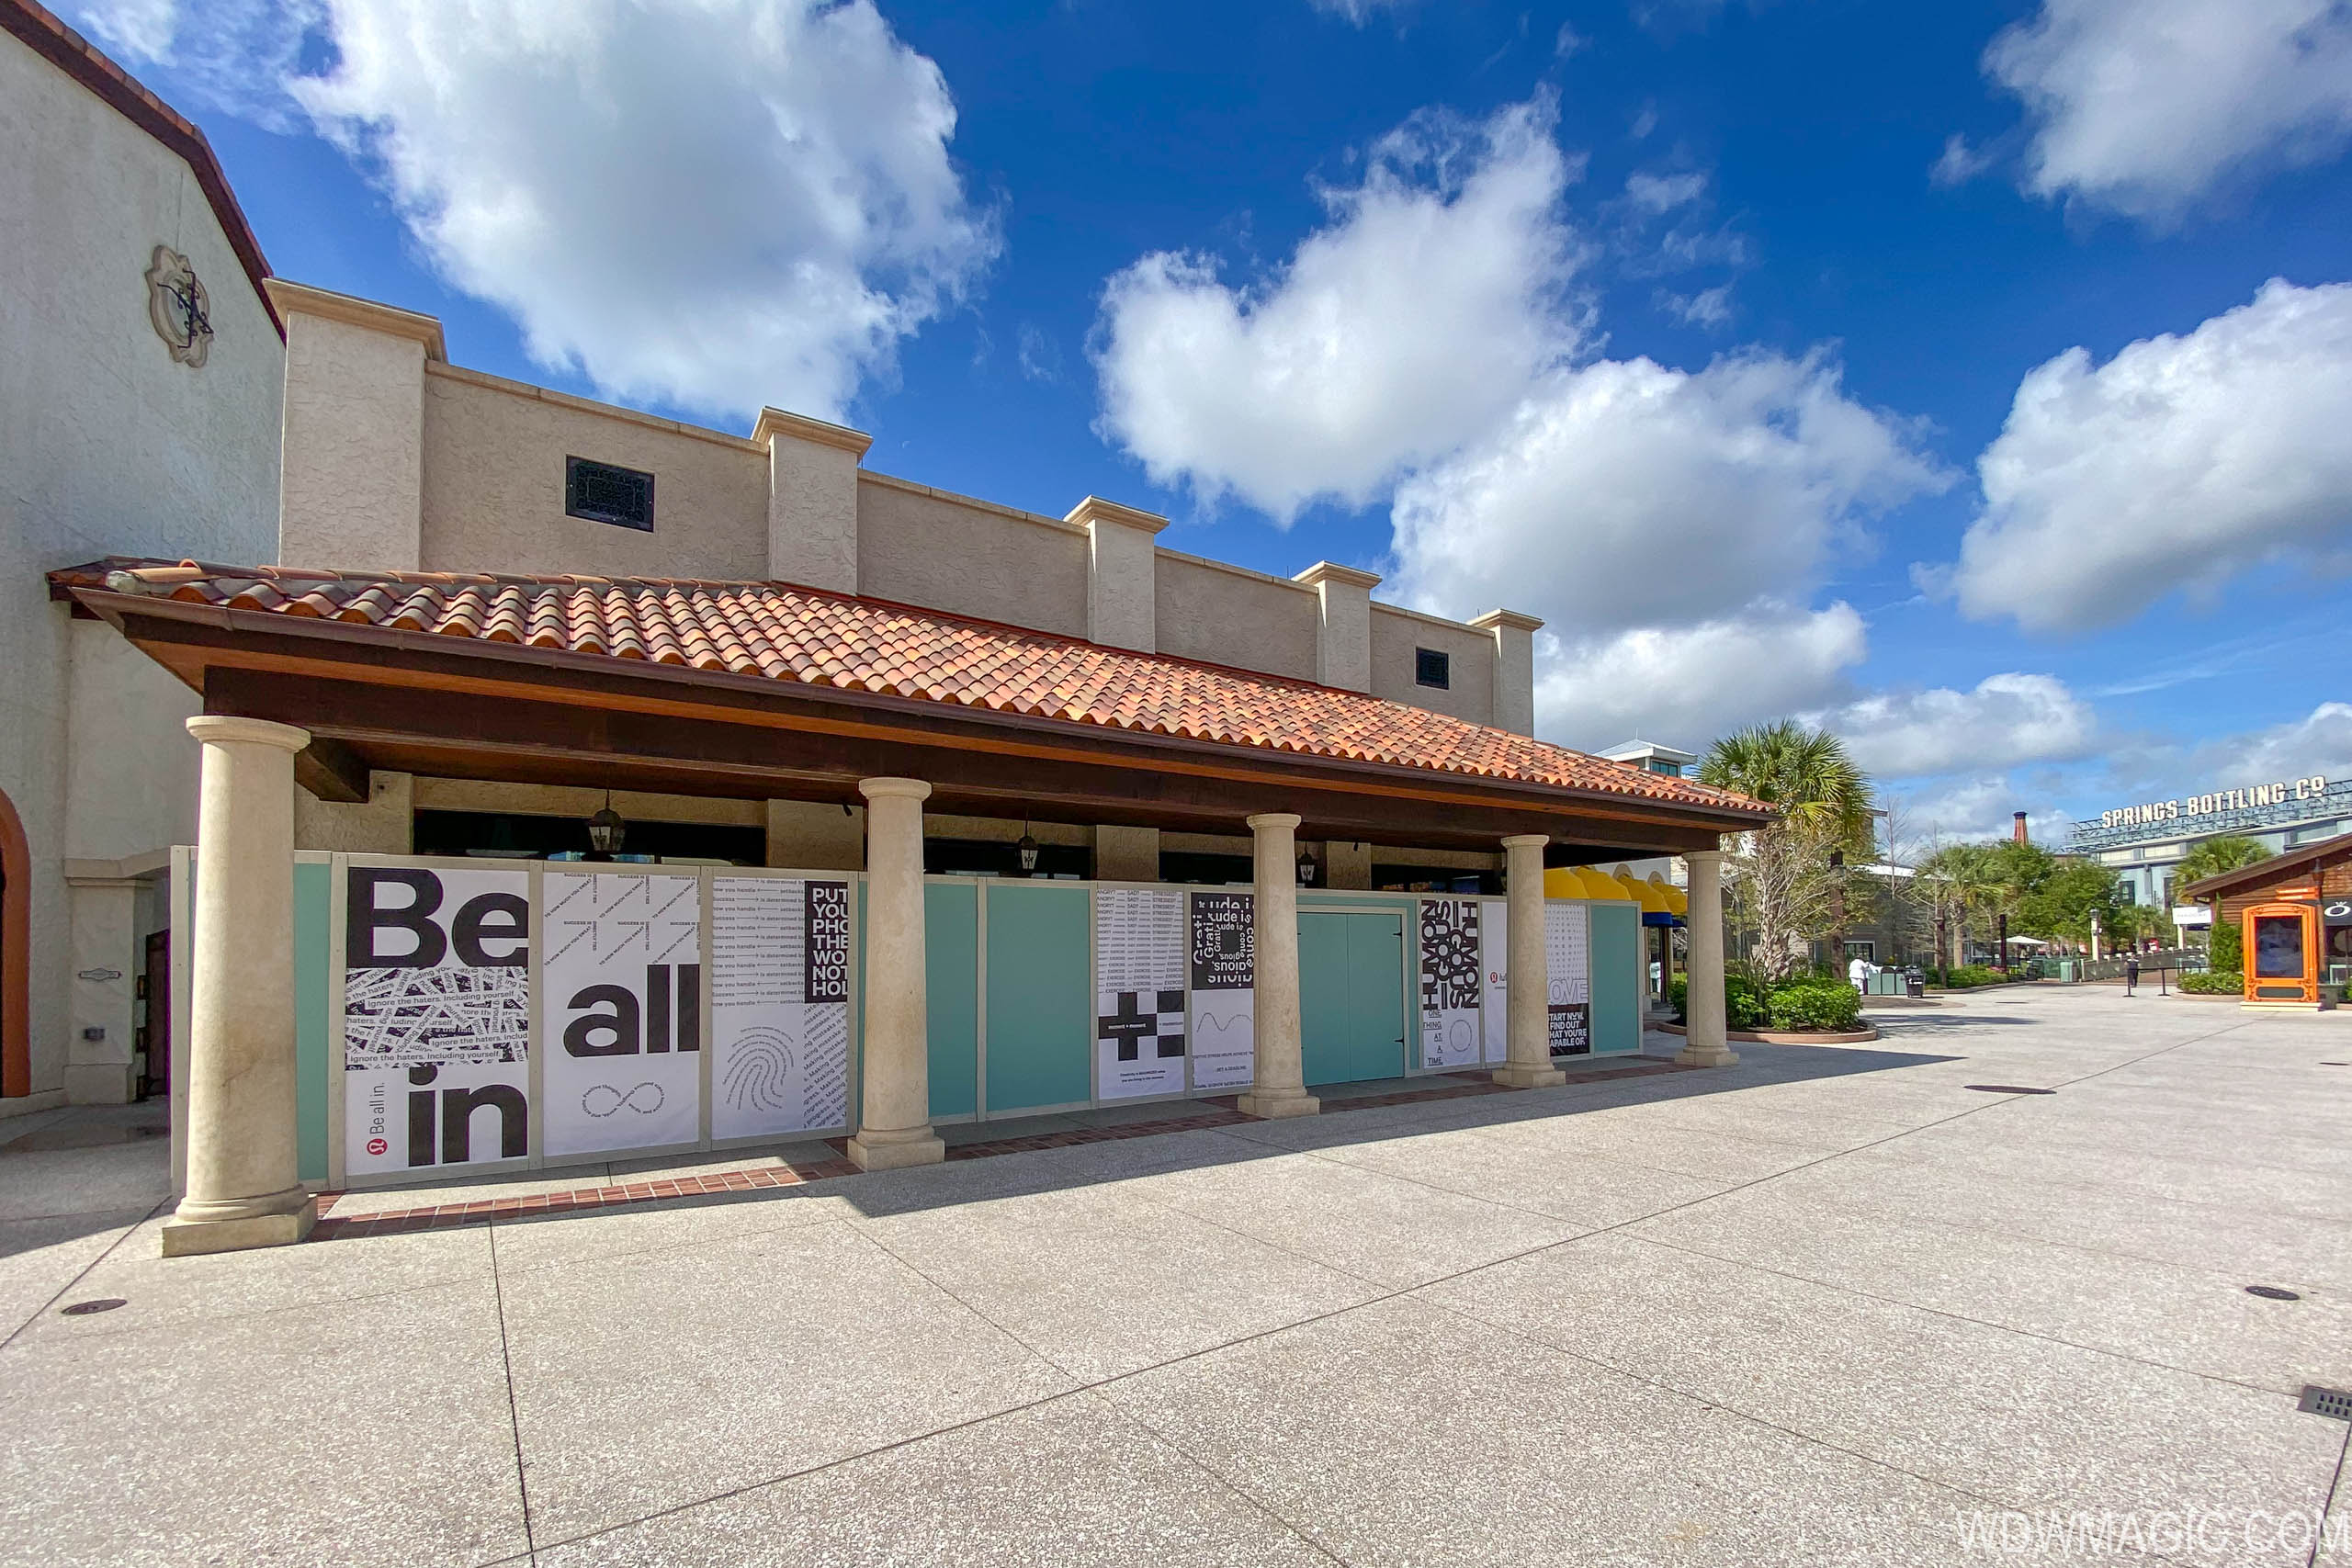 lululemon store coming to Disney Springs replacing the Trophy Room